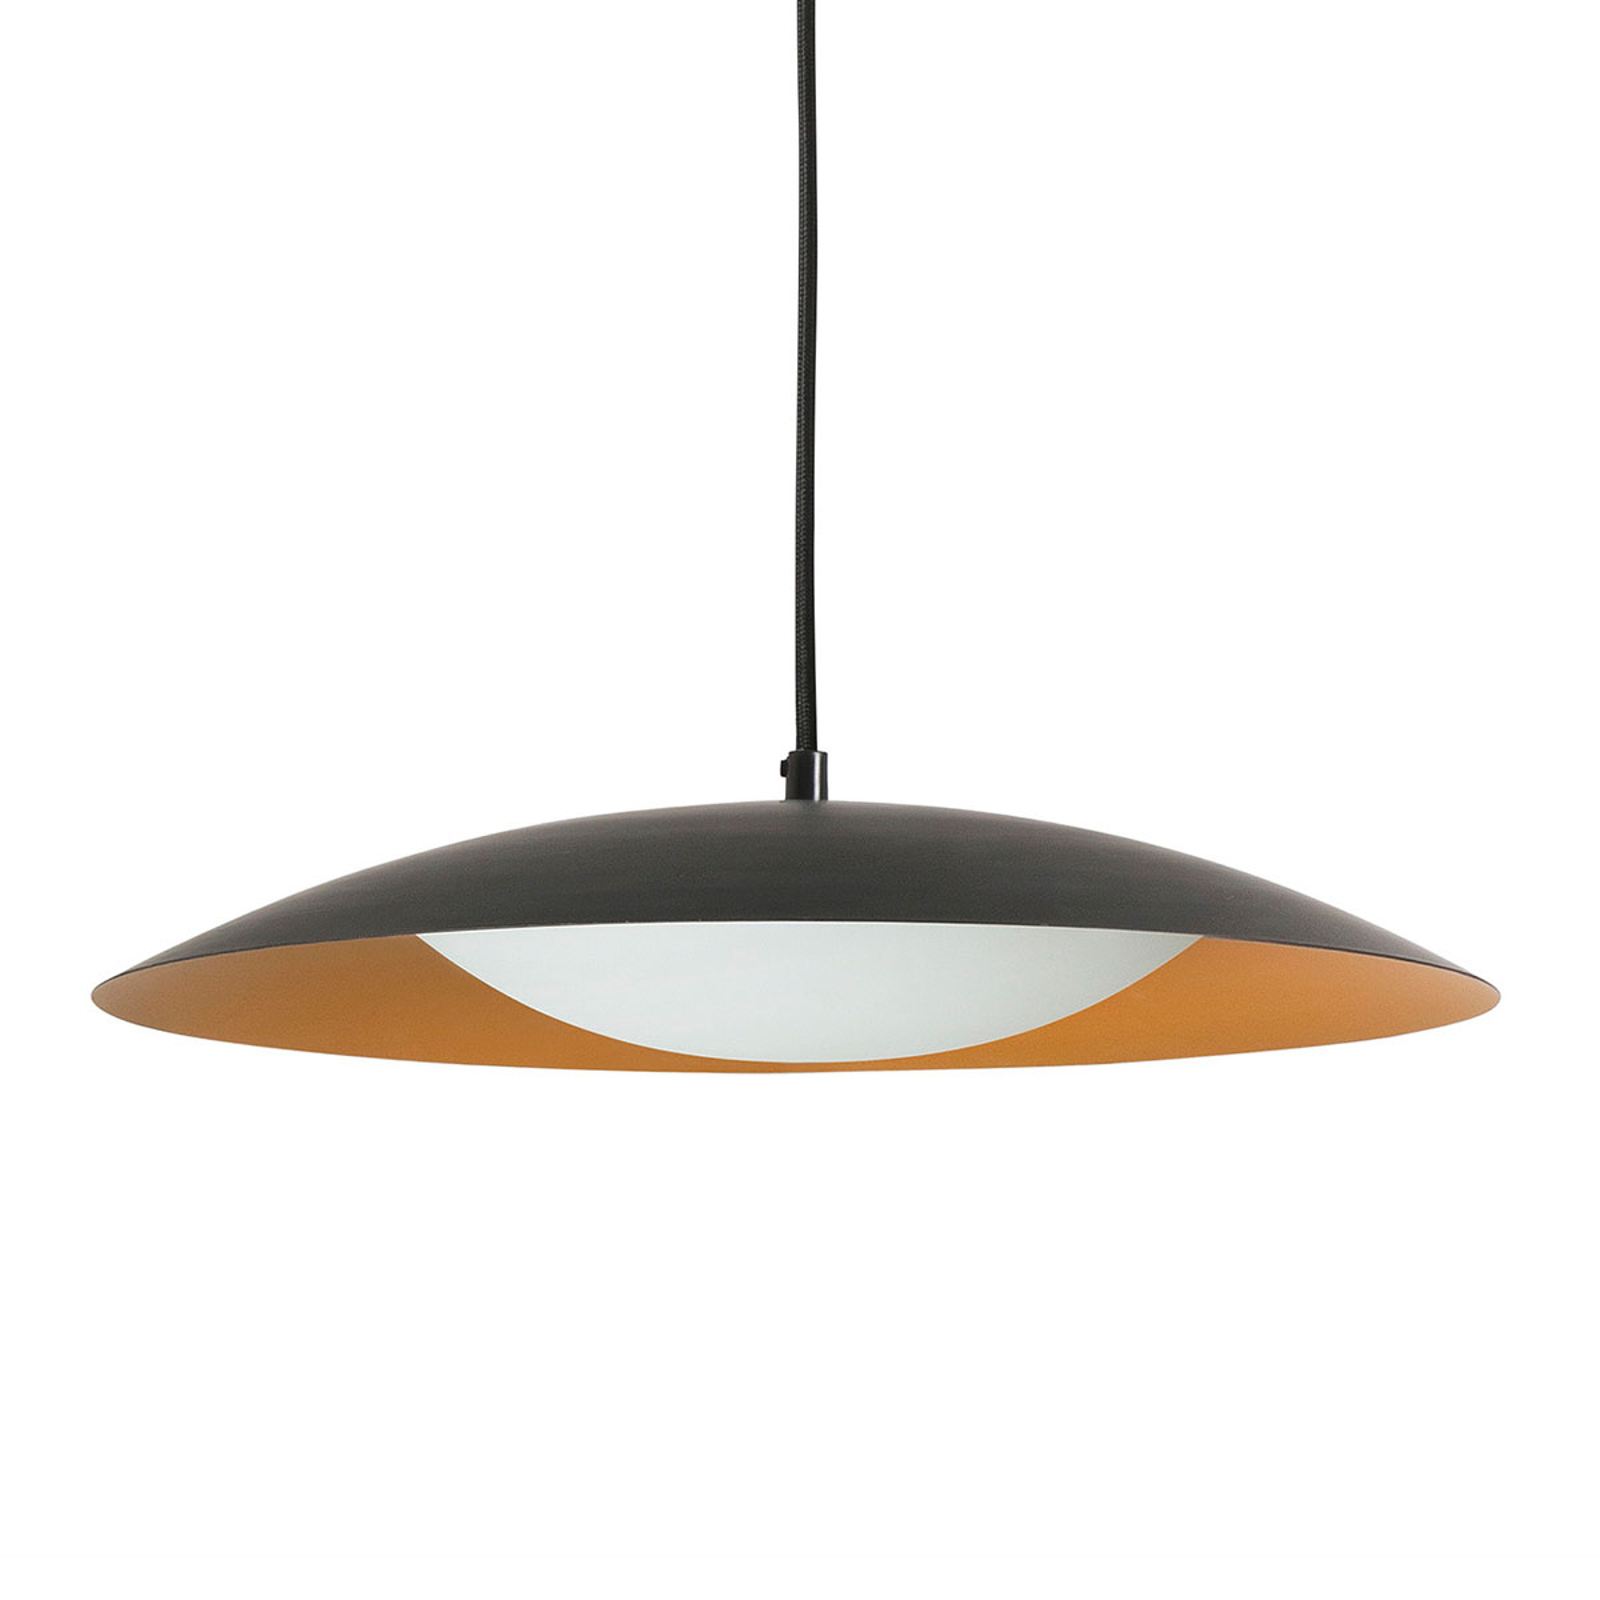 LED hanglamp Slim, 1-lamp in zwart-goud